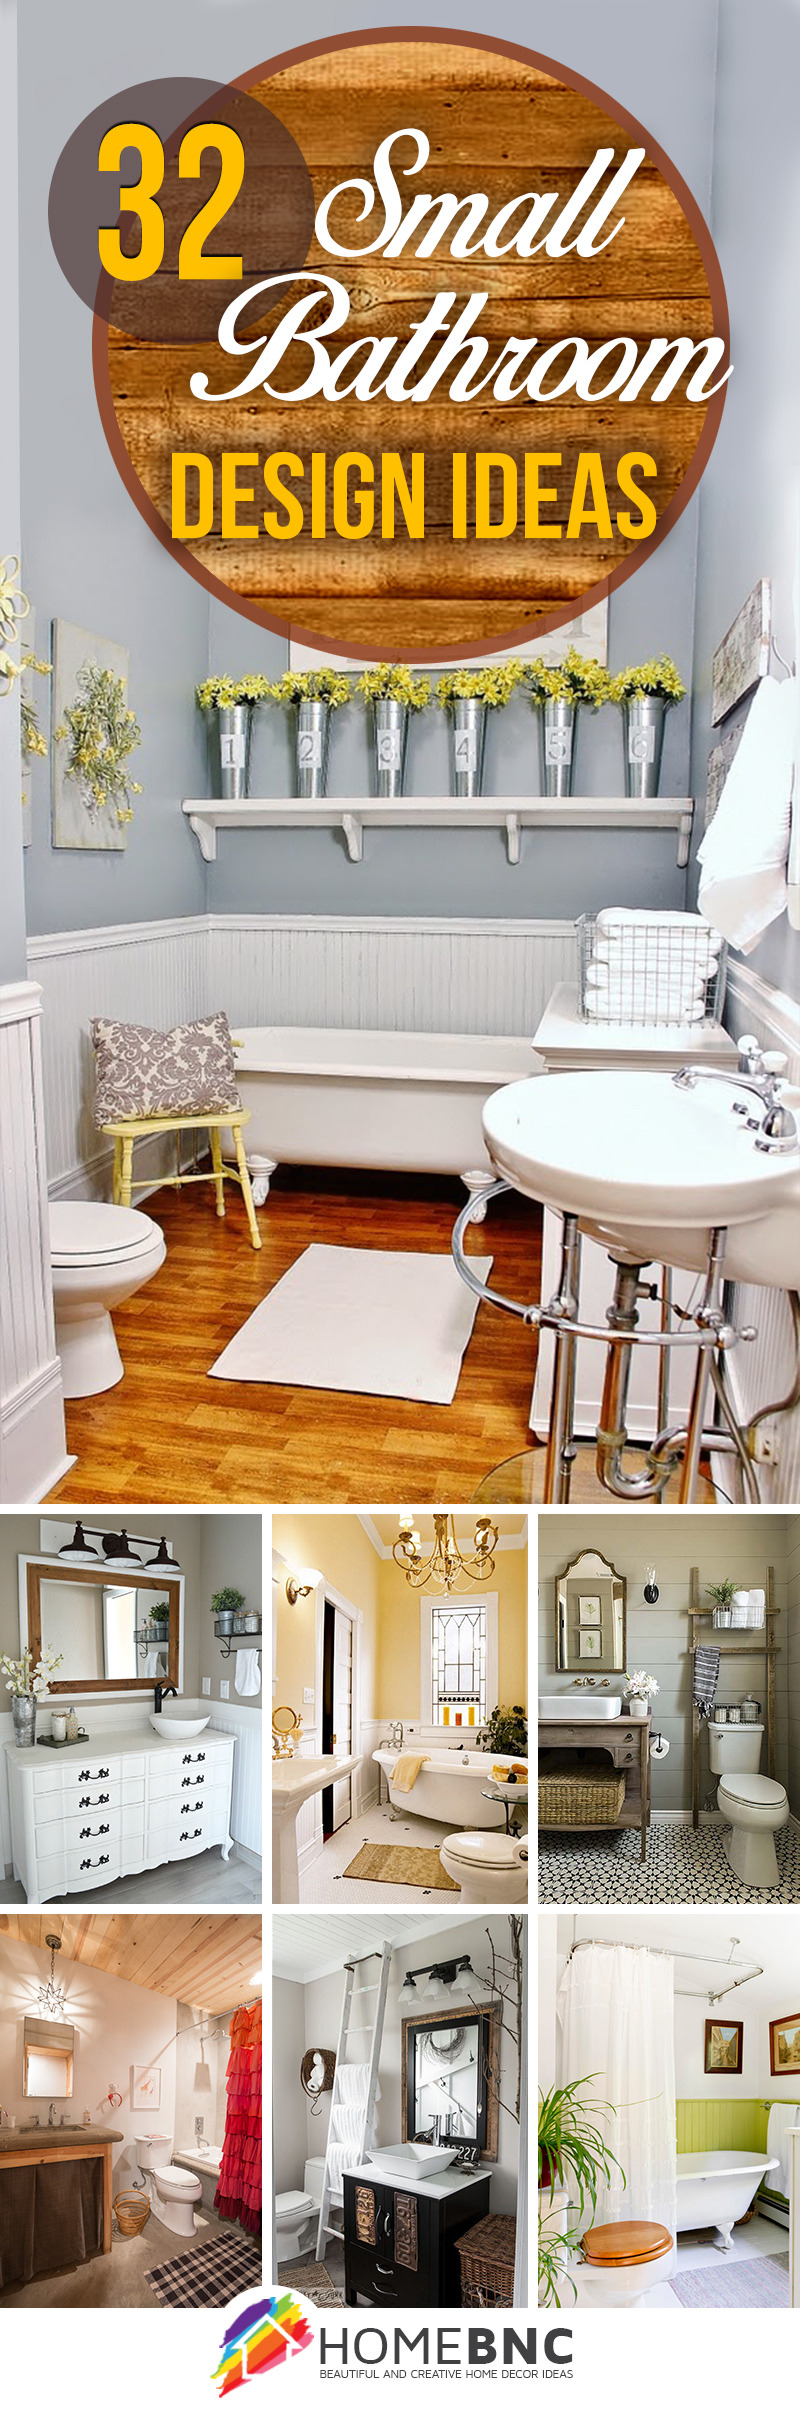 small bathroom design ideas pinterest share homebnc